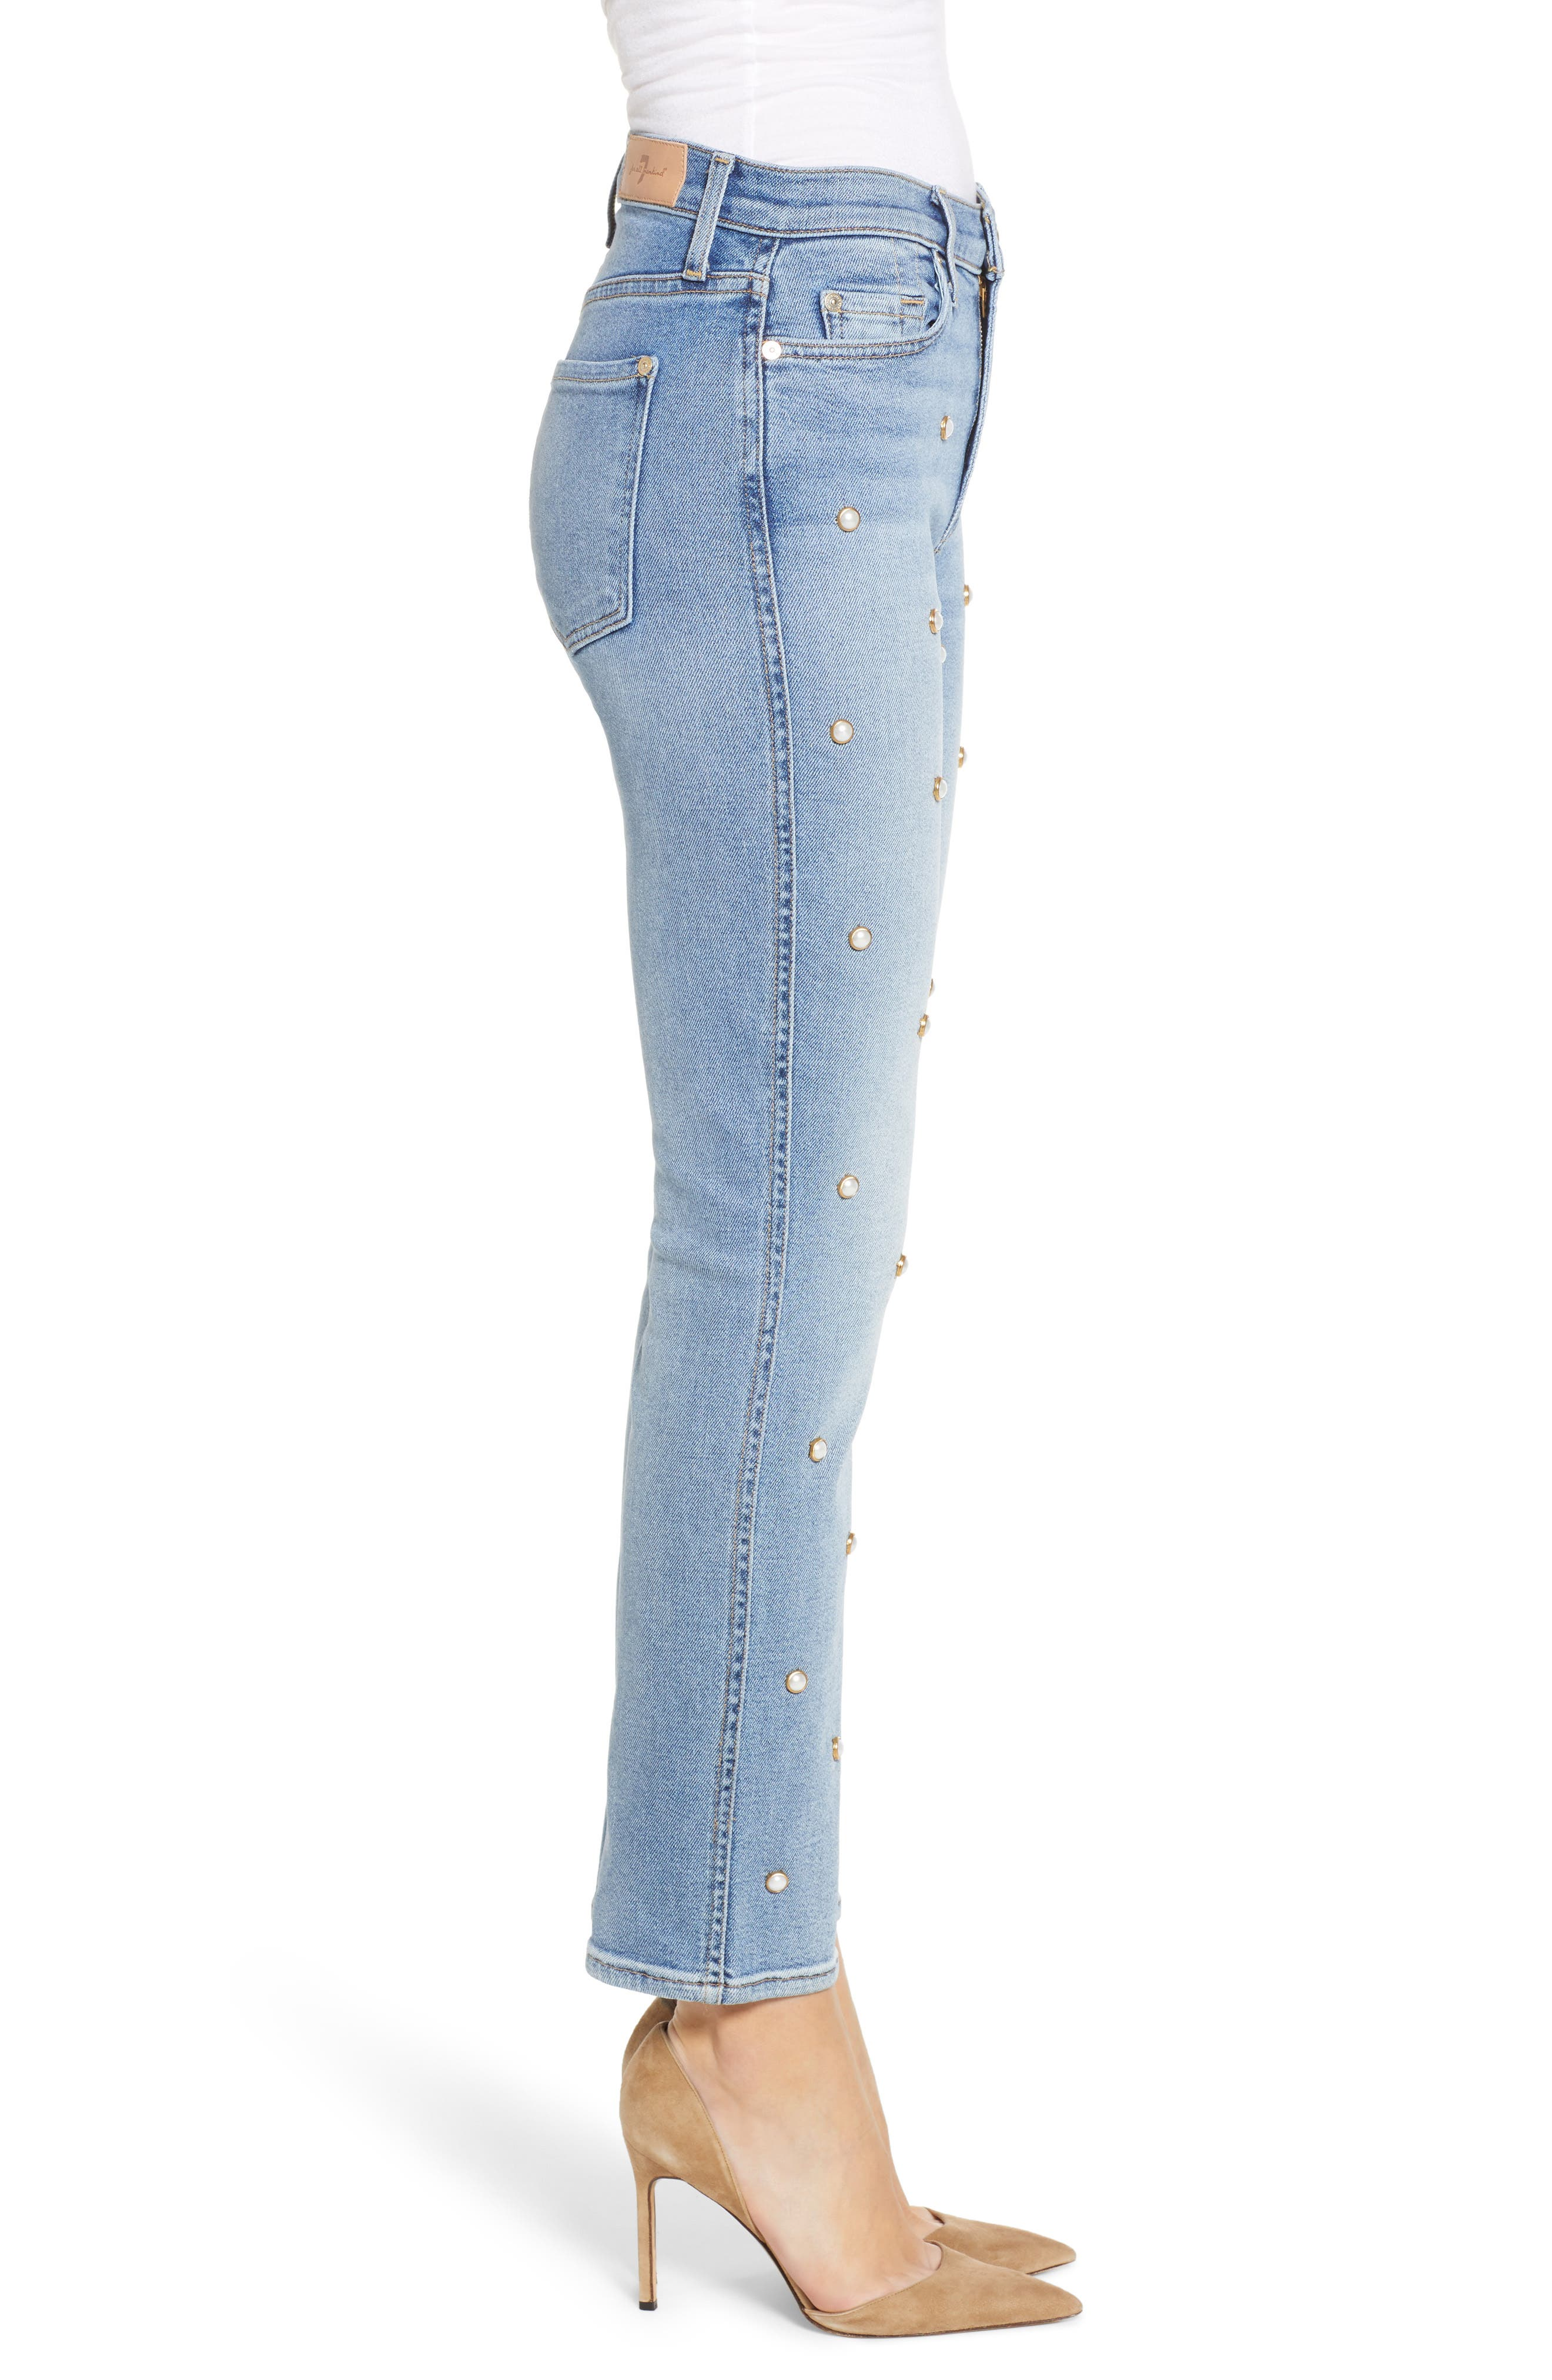 Edie Faux Pearl Detail Ankle Jeans,                             Alternate thumbnail 3, color,                             LUXE VINTAGE FLORA